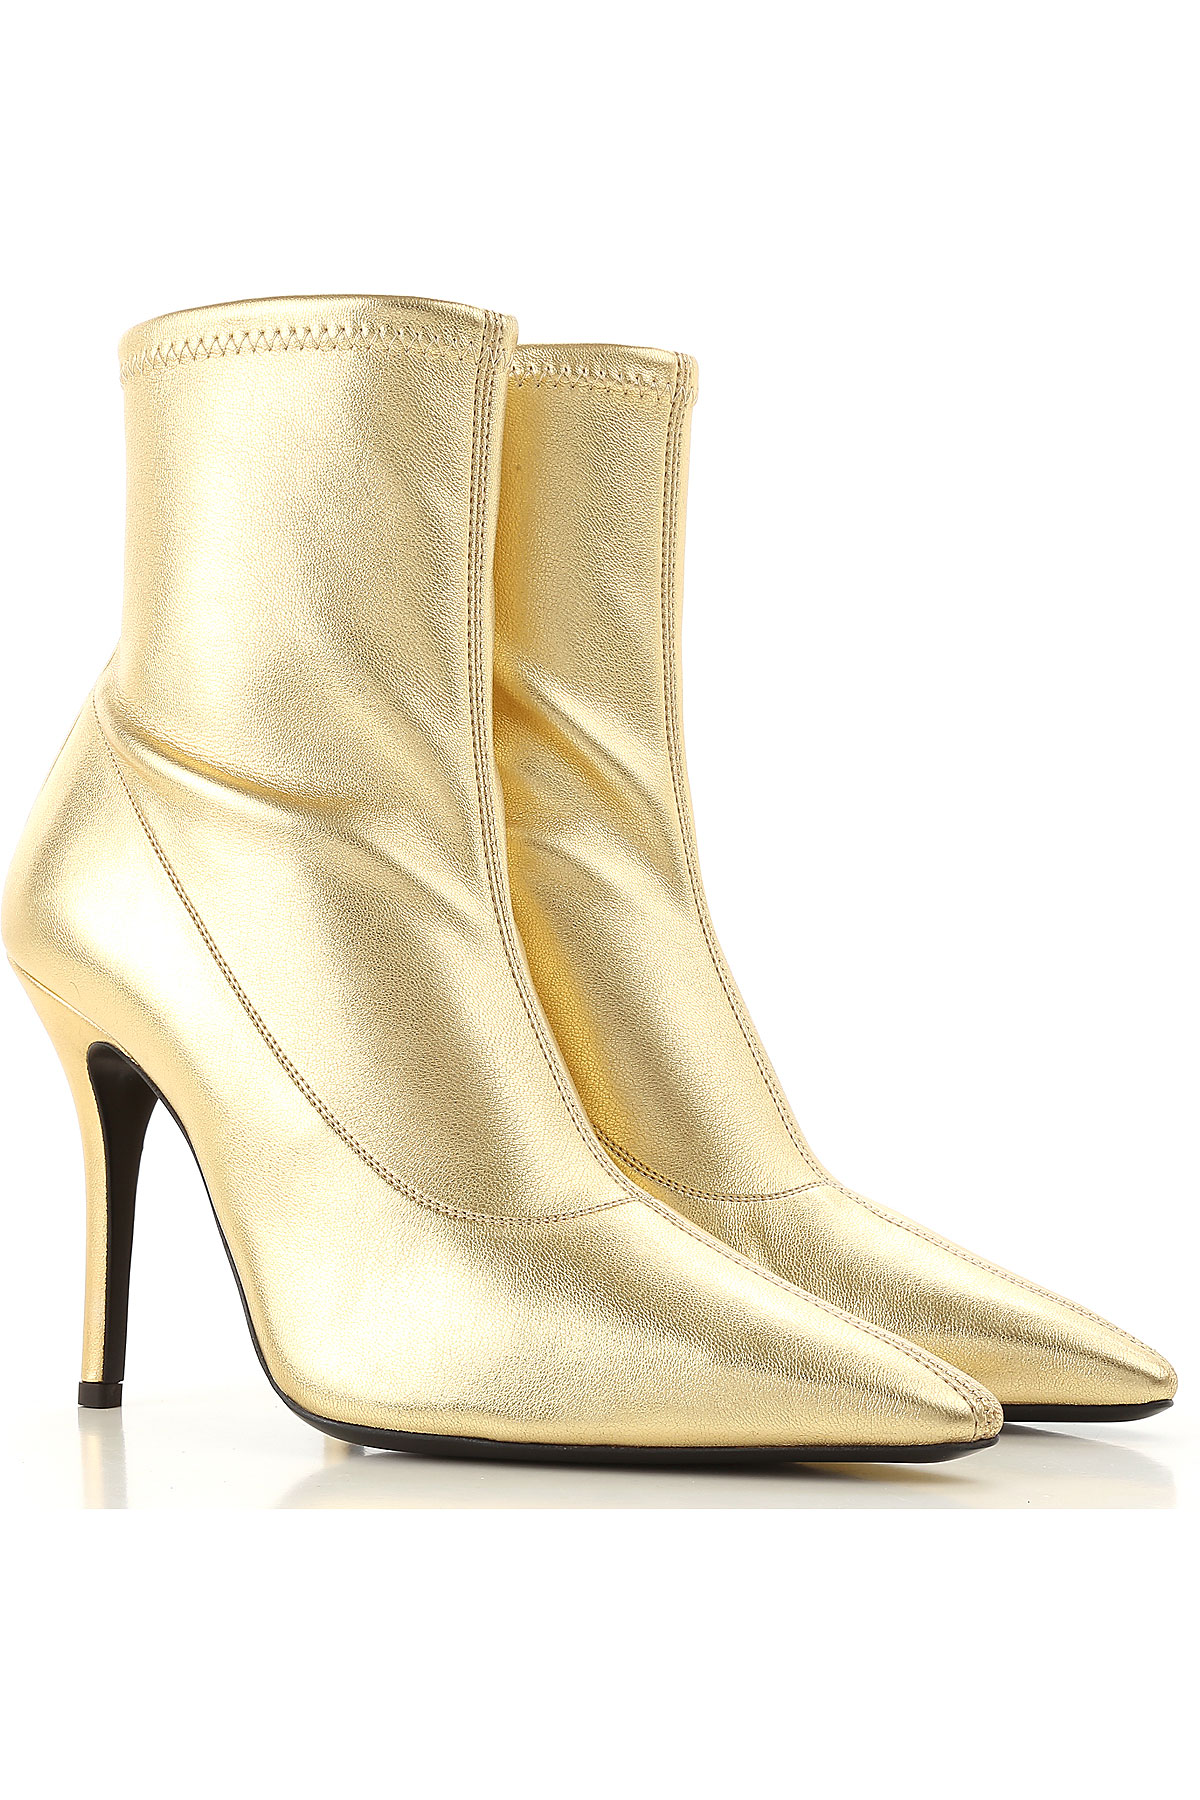 Image of Giuseppe Zanotti Design Jeans, Gold, Leather, 2017, 10 6 7 8 8.5 9